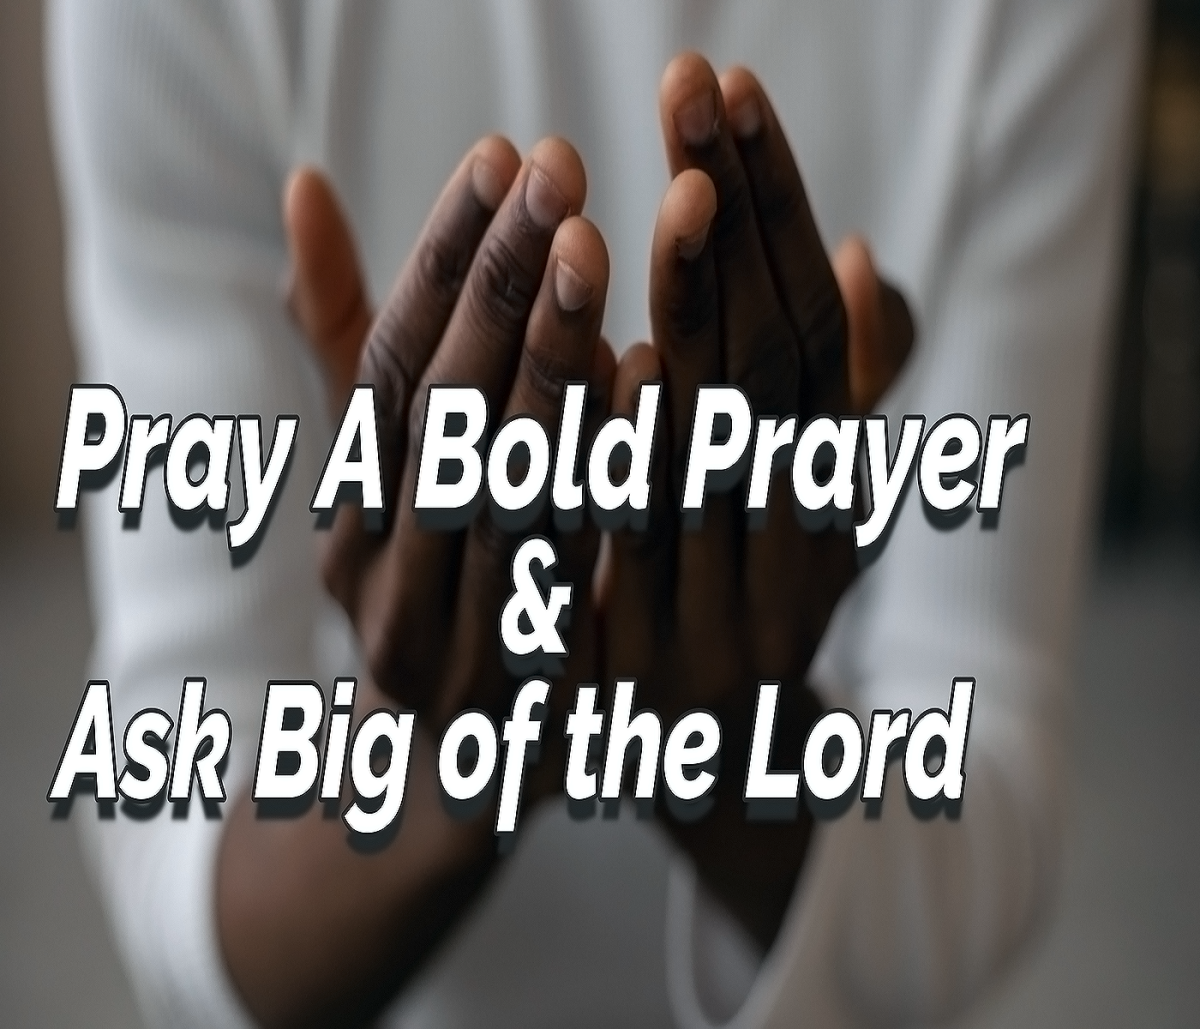 Pray A Bold Prayer & Ask Big of the Lord